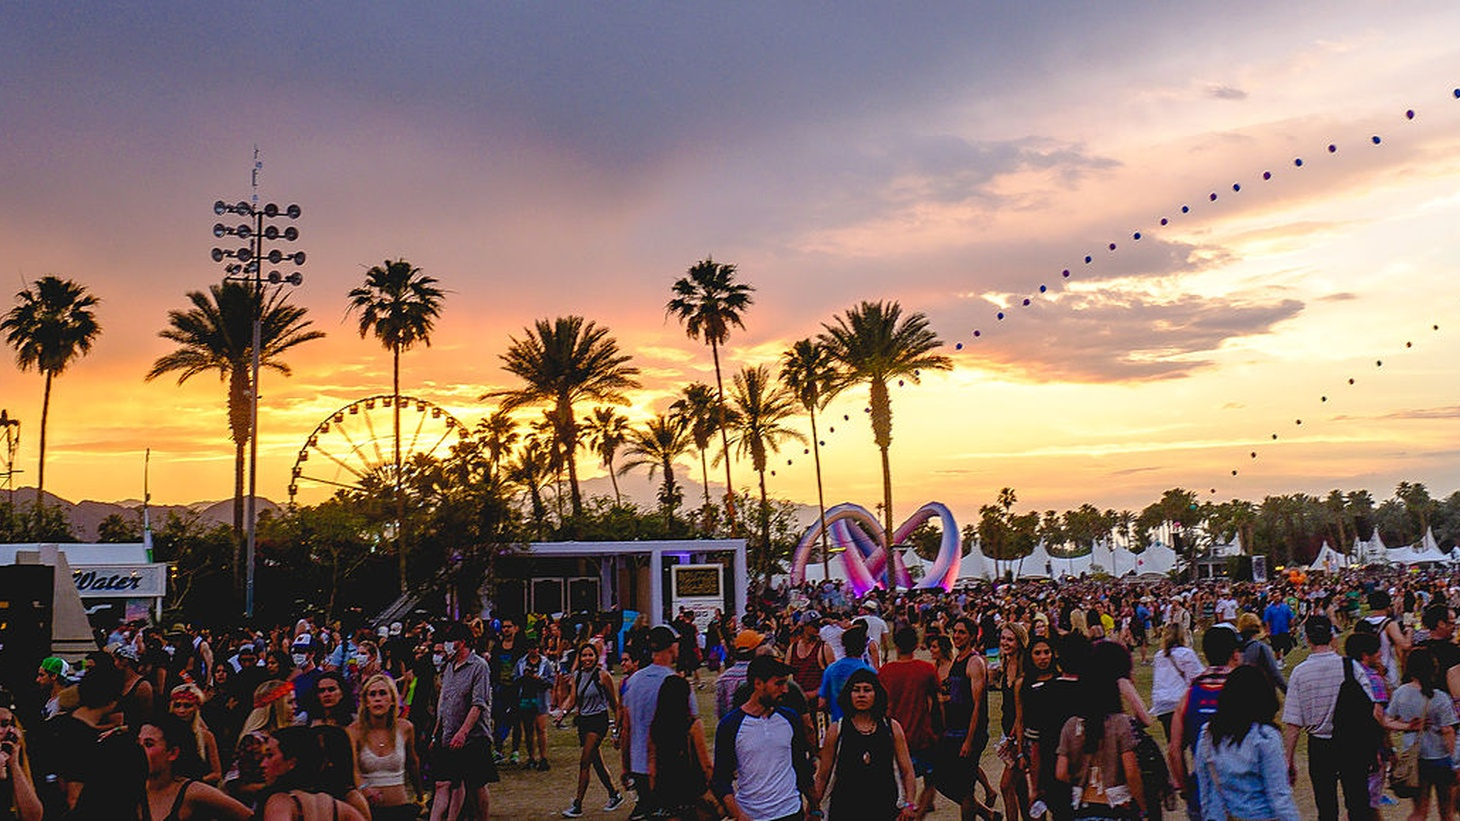 Sunset during Coachella 2014, with the balloon chain and Lightweaver art installation visible.